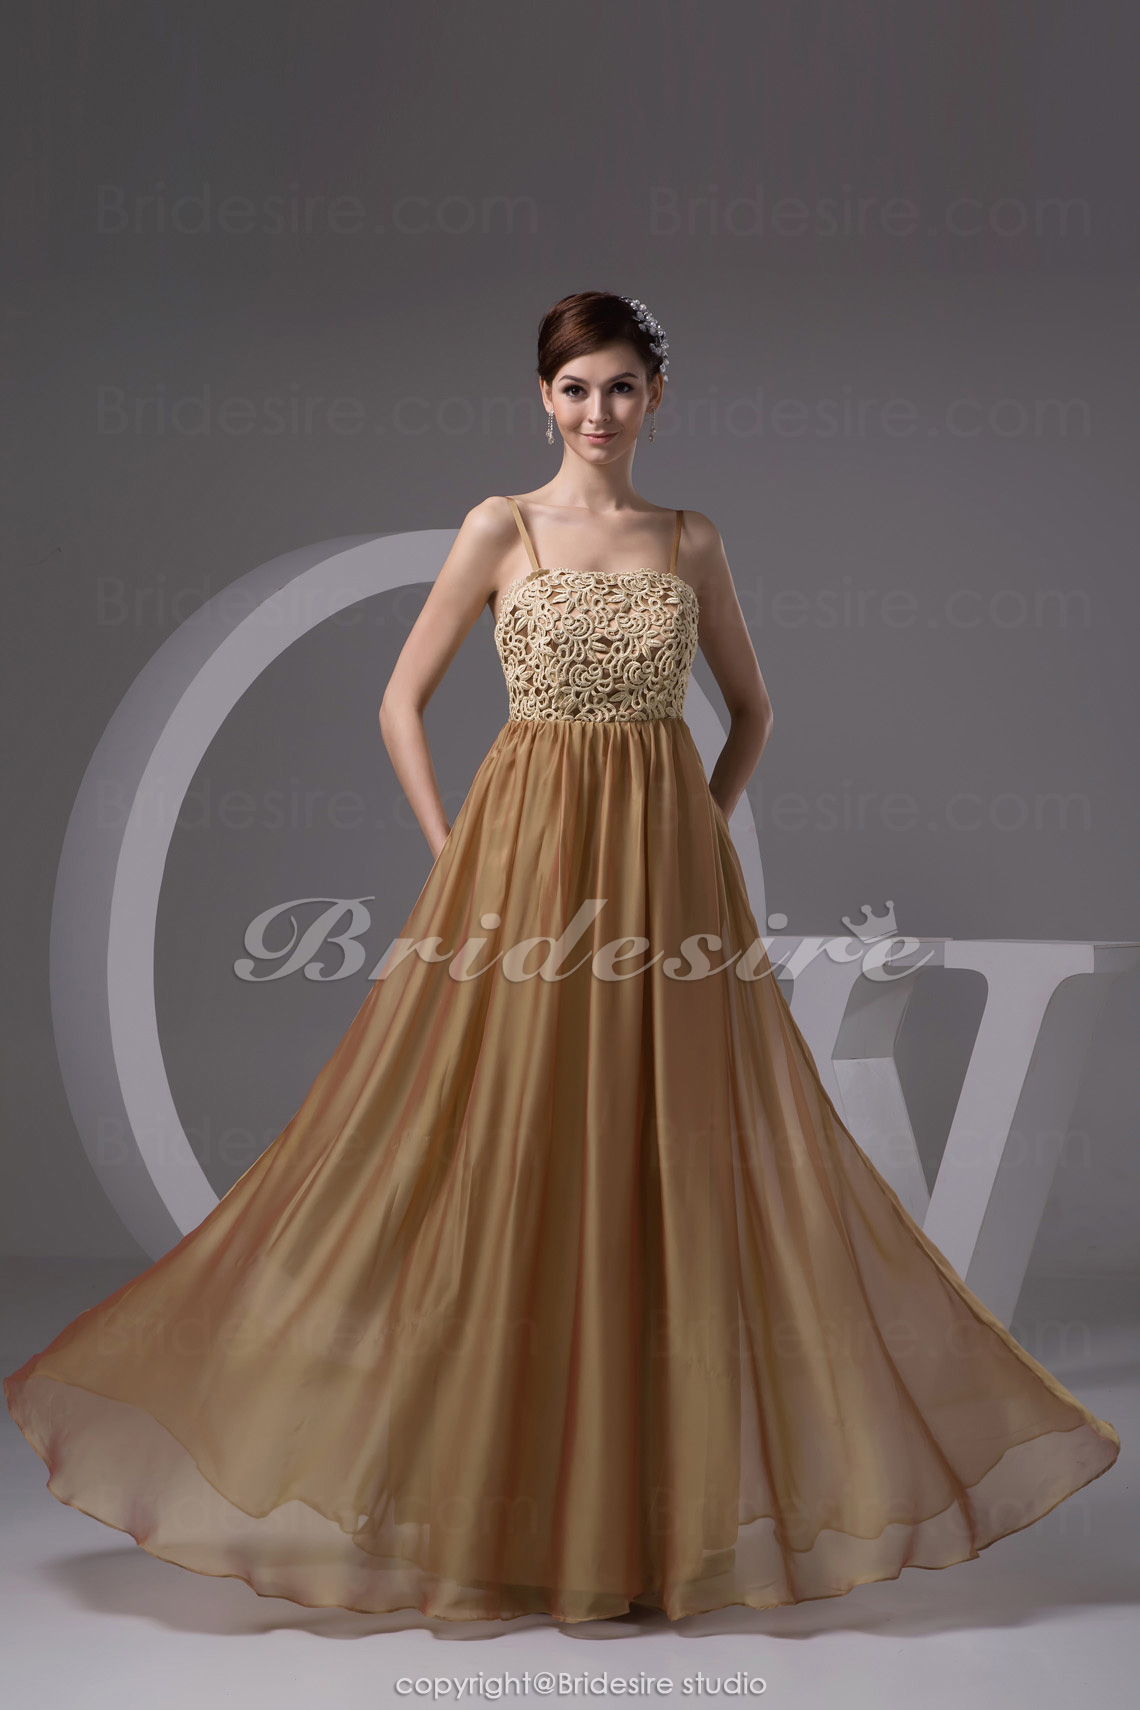 Sheath/Column Spaghetti Straps Floor-length Sleeveless Chiffon Lace Dress